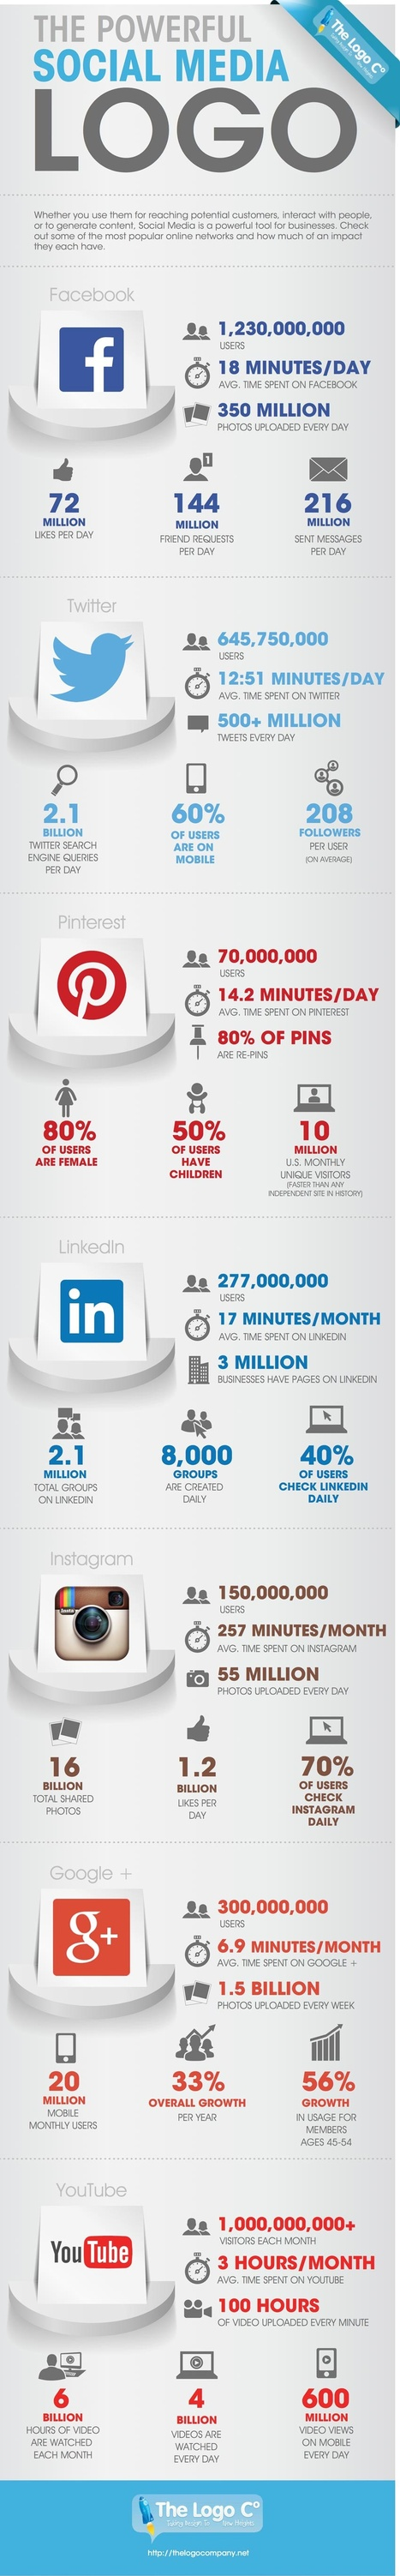 The Power Of Social Media #INFOGRAPHIC | Hamptons Real Estate | Scoop.it